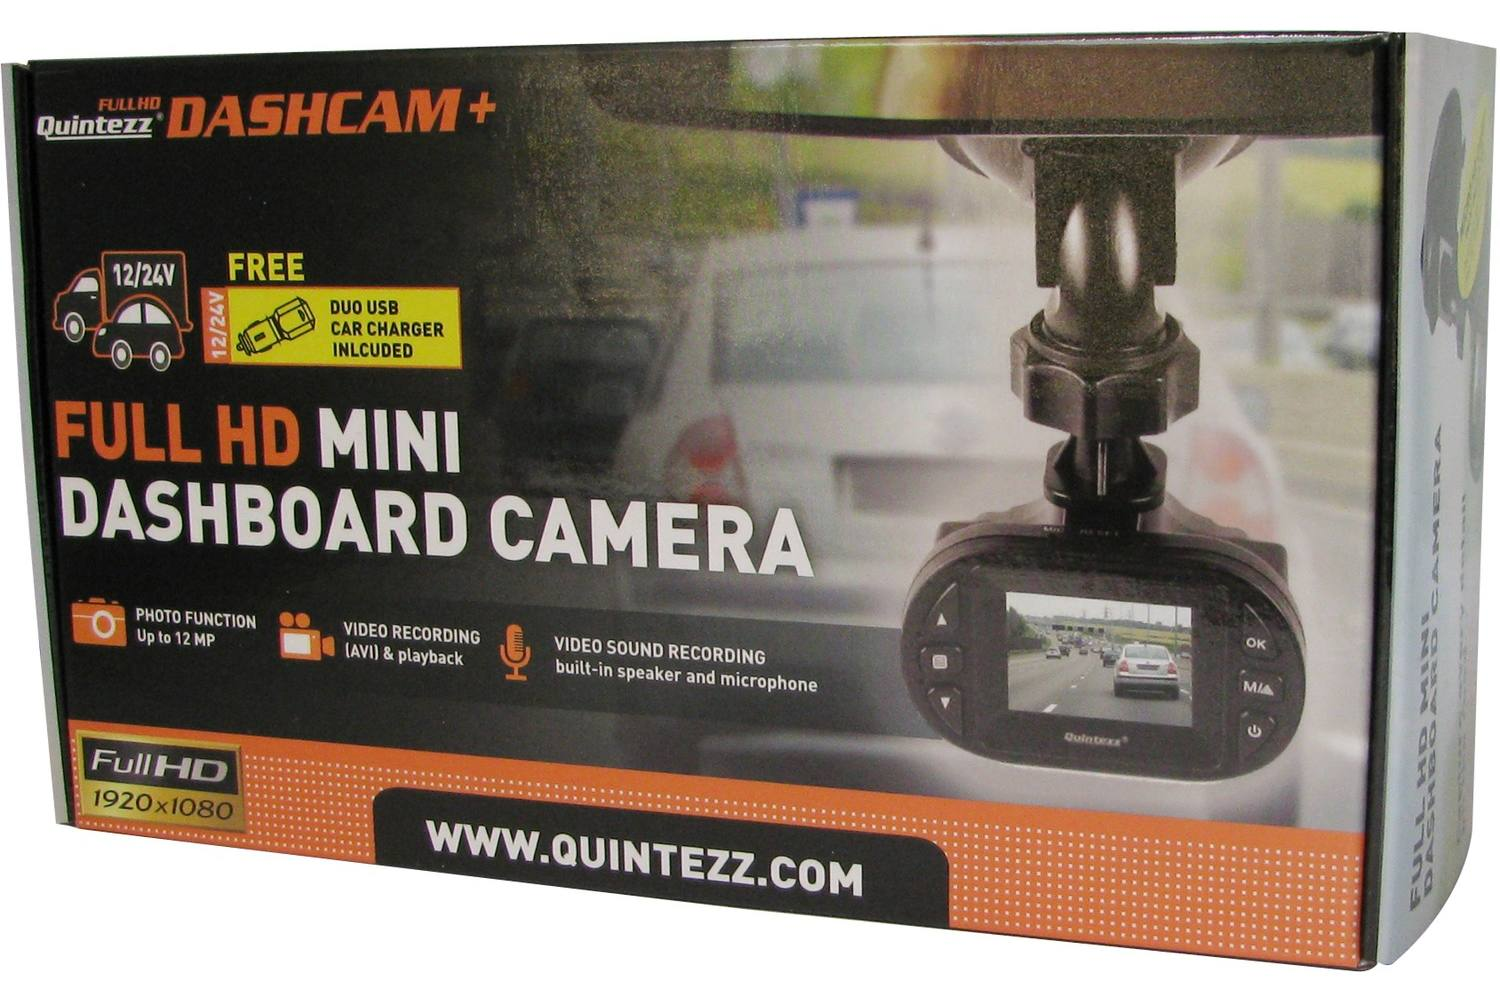 Dashboard camera, Quintezz, 1,5 Full HD, 12/24V 1